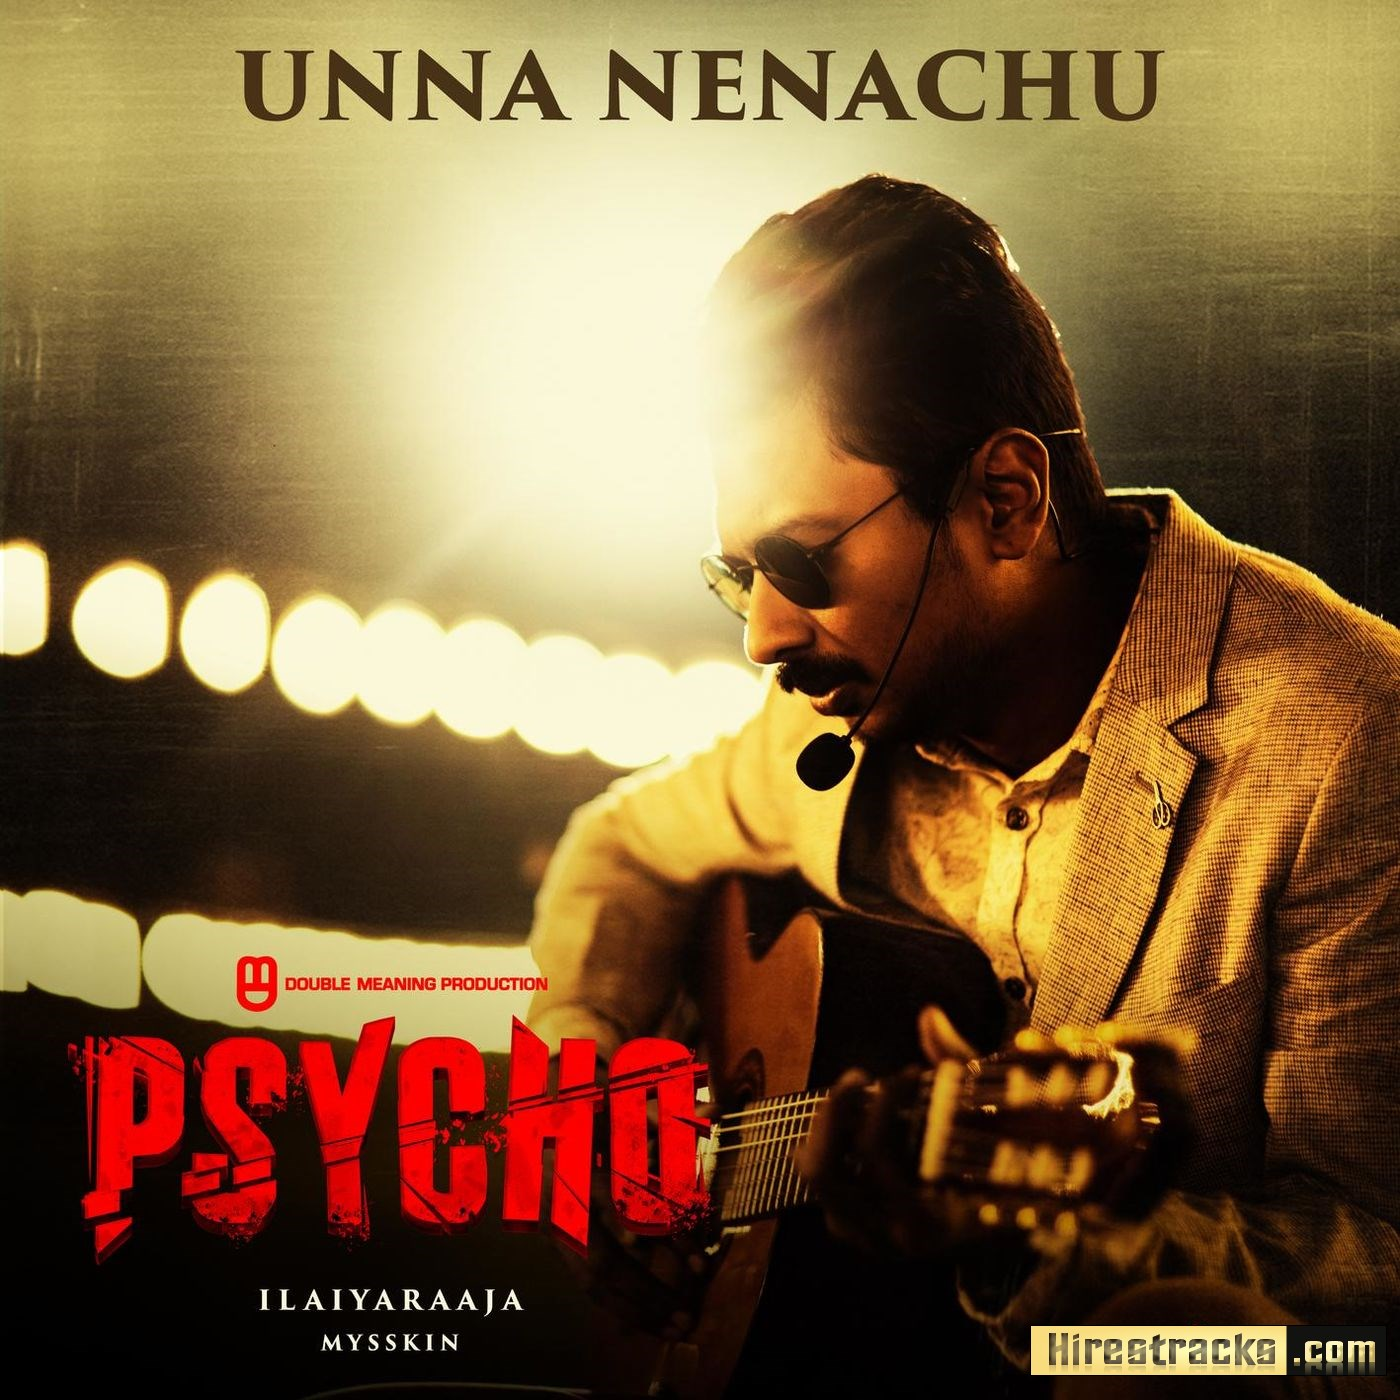 Unna Nenachu (From Psycho Tamil ) (2019) (Ilaiyaraaja) (Sony Music) [Digital-DL-FLAC]